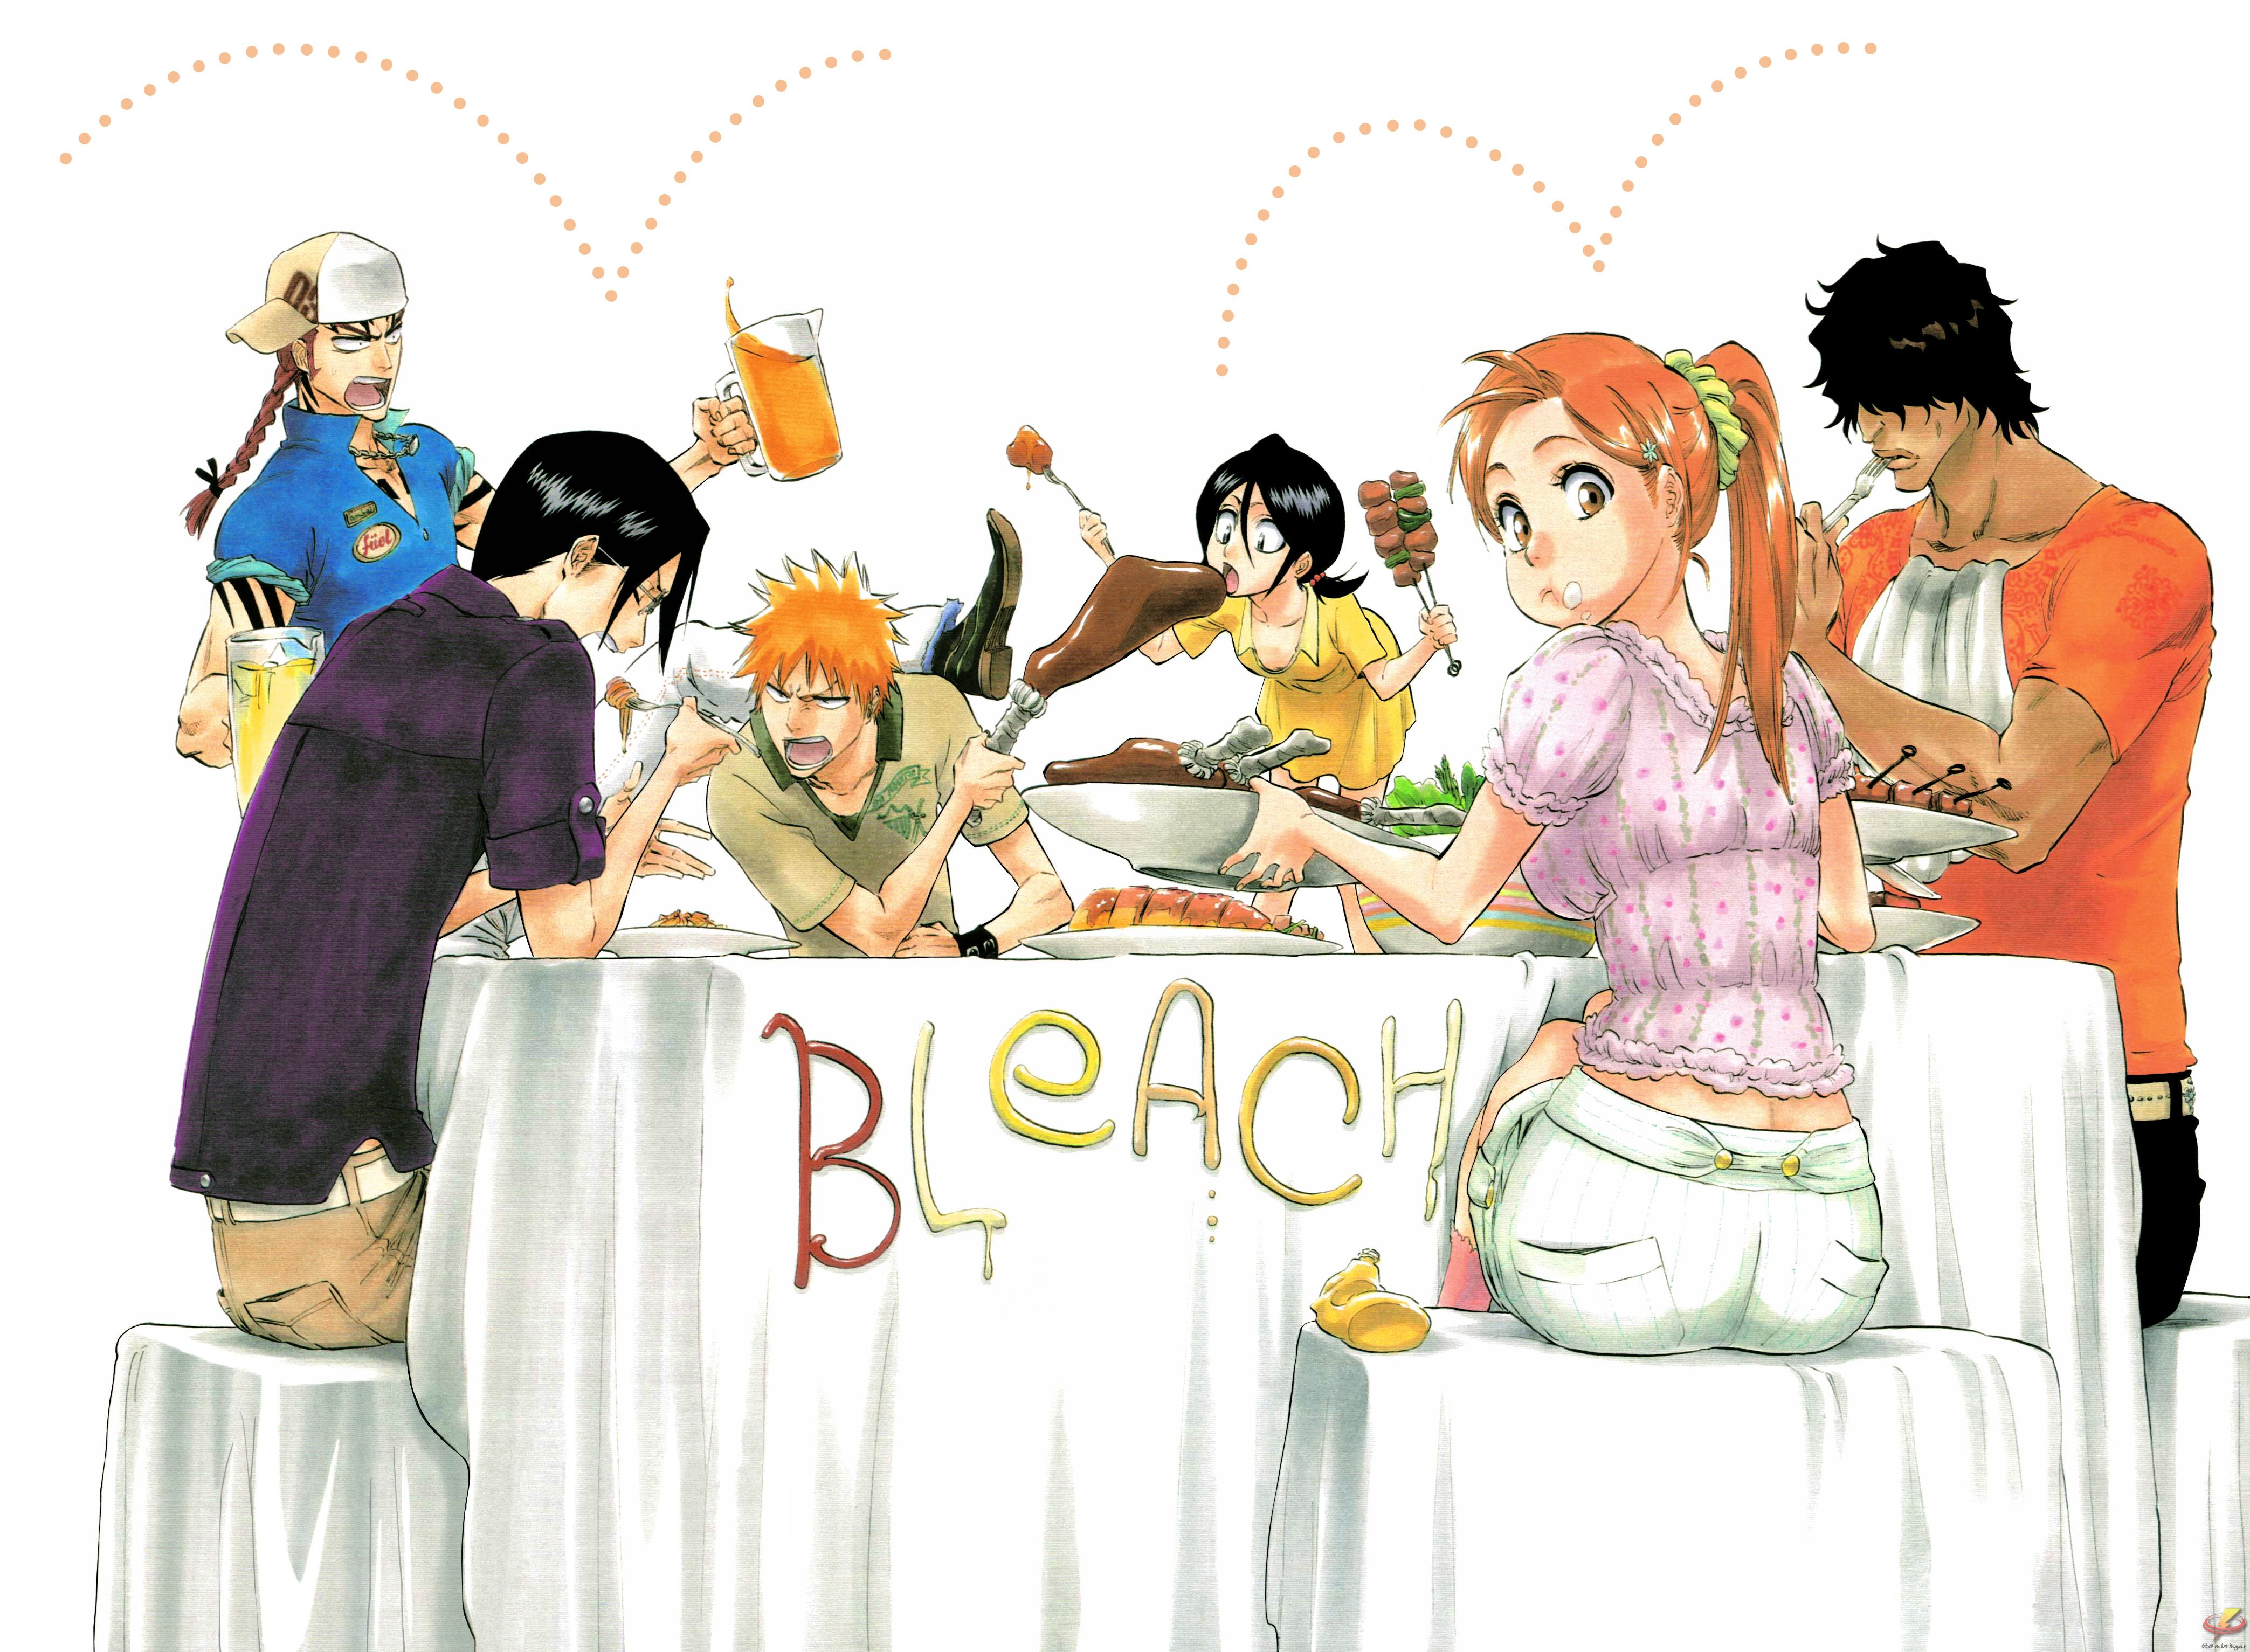 Bleach coloring games online - This Is A Super High Quality Scan From Last Weeks Bleach Chapter Credit To Ju Ni For The Scan Enjoy